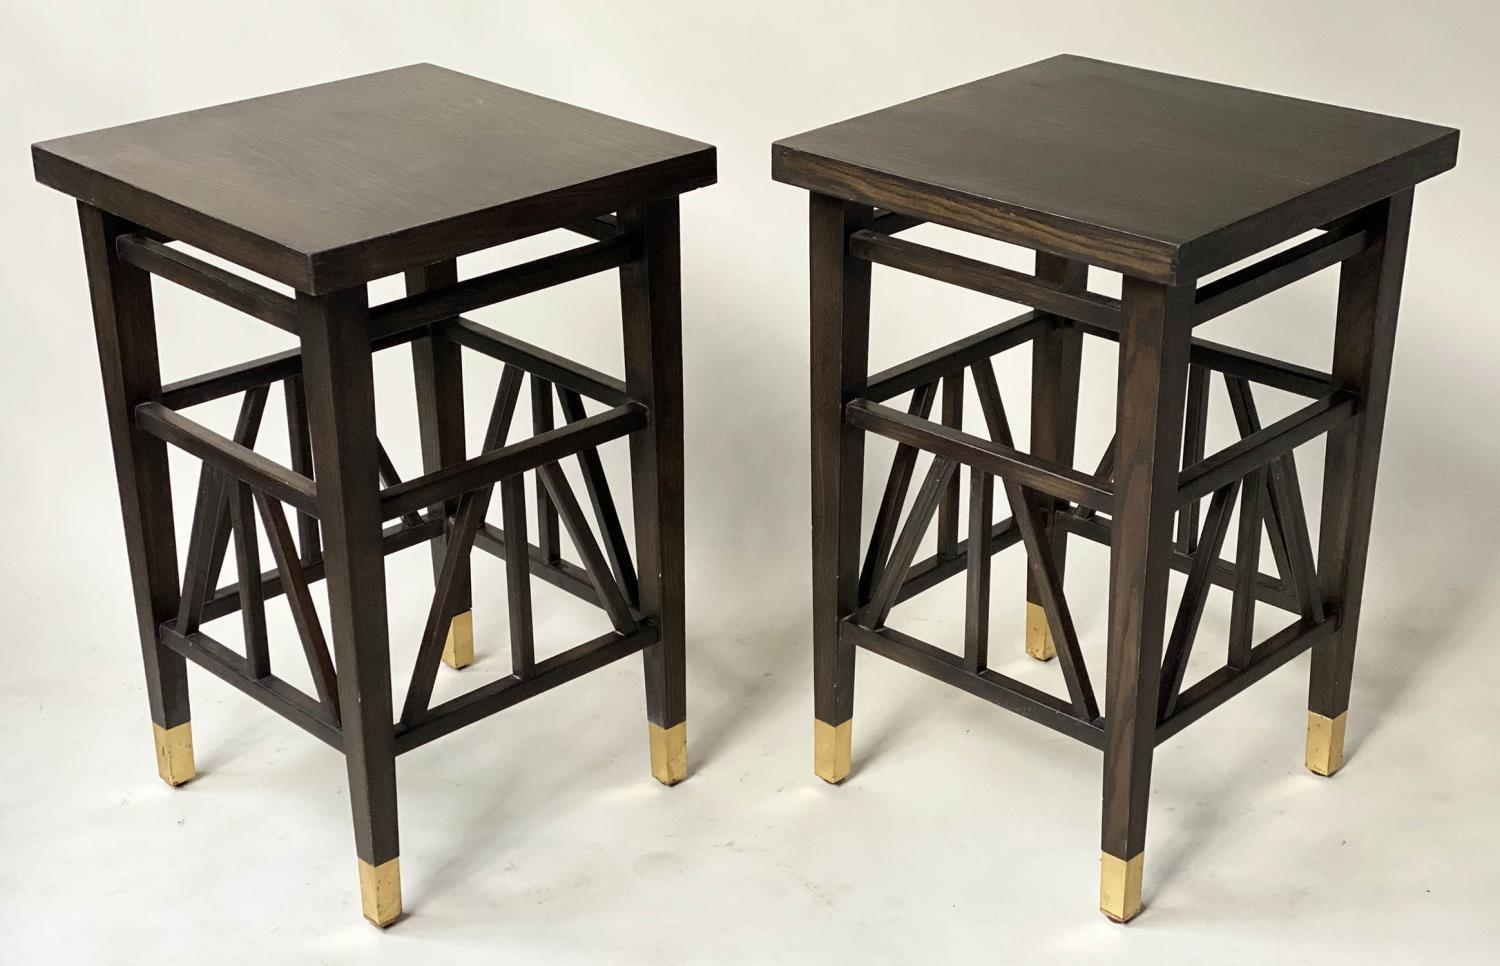 LAMP TABLES, a pair, Liberty style black lacquered, square tops with brass tipped supports, 40cm x